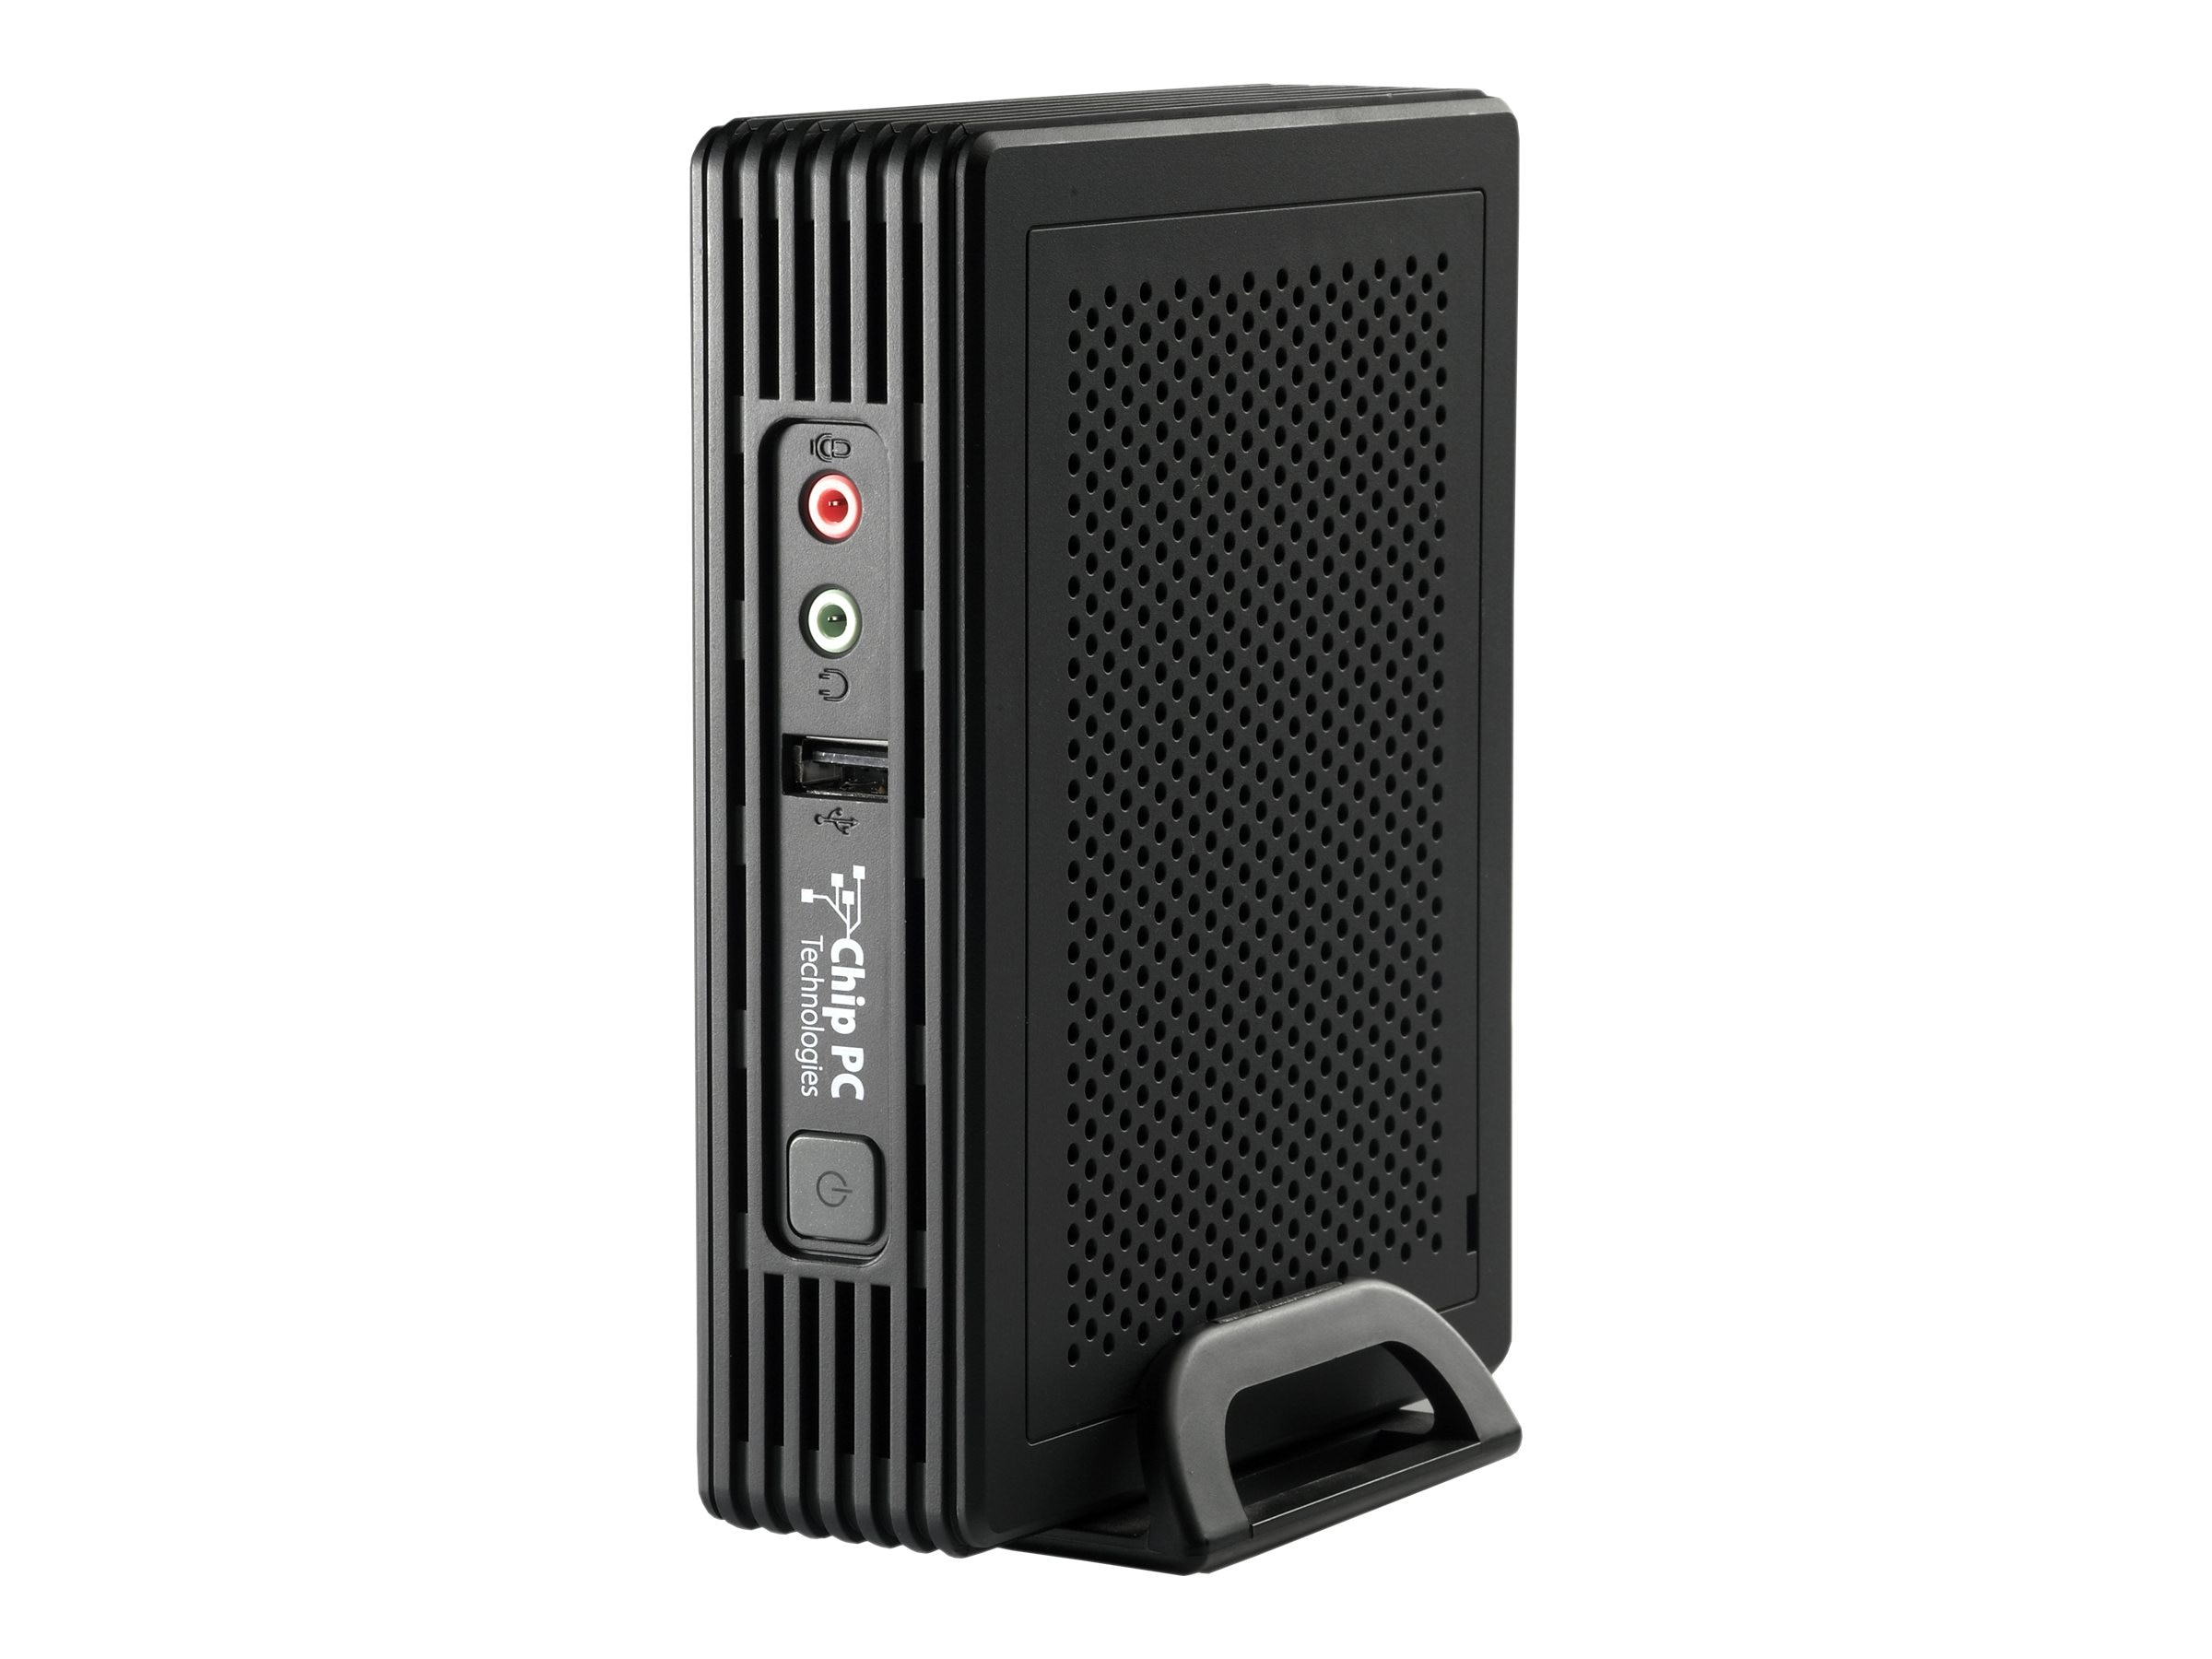 Chip PC EX PC Thin Client AMD DC Fusion T40N 1.0GHz 2GB RAM 8GB HD6290 WiFi WES7, CPN06377, 16803131, Thin Client Hardware